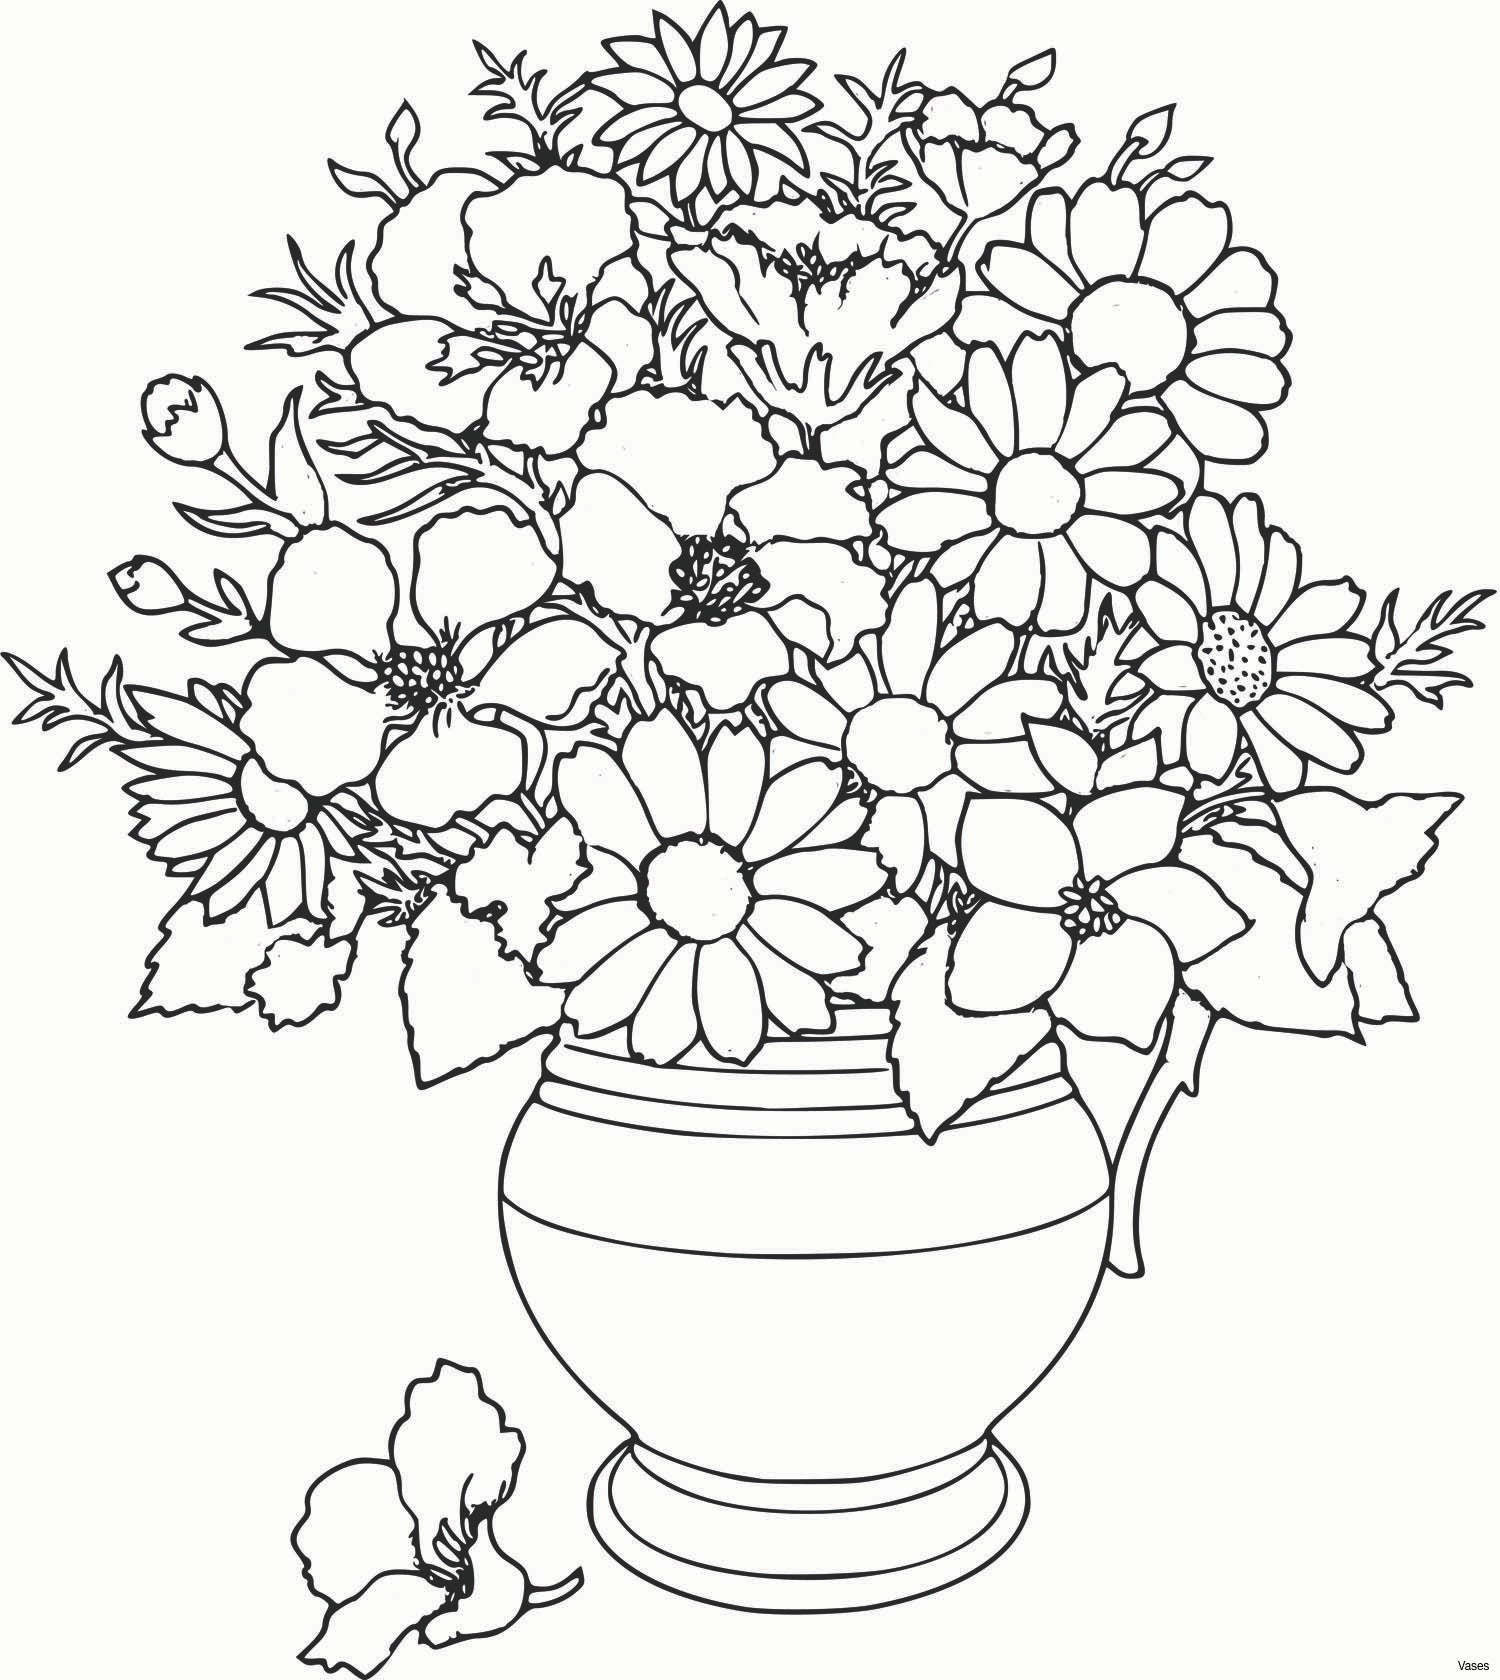 leaded glass vase of stained glass coloring pages beautiful tropical flowers stained within stained glass coloring pages beautiful tropical flowers stained glass coloring book fun time